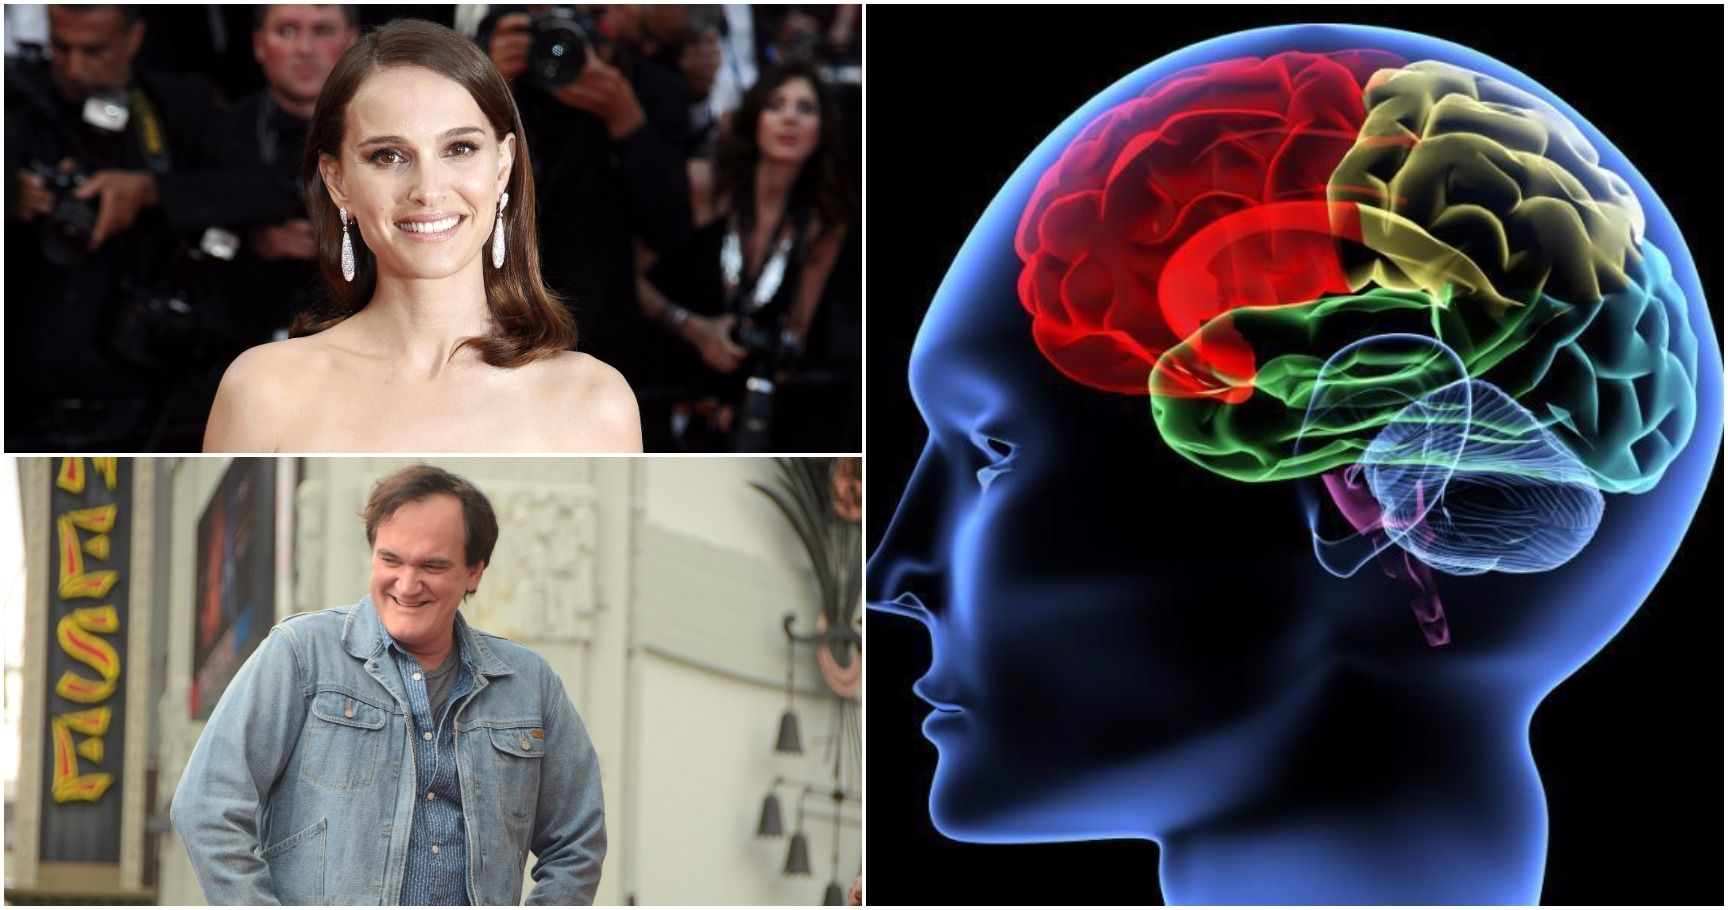 15 Celebrities You Didn't Know Have Shockingly High IQs